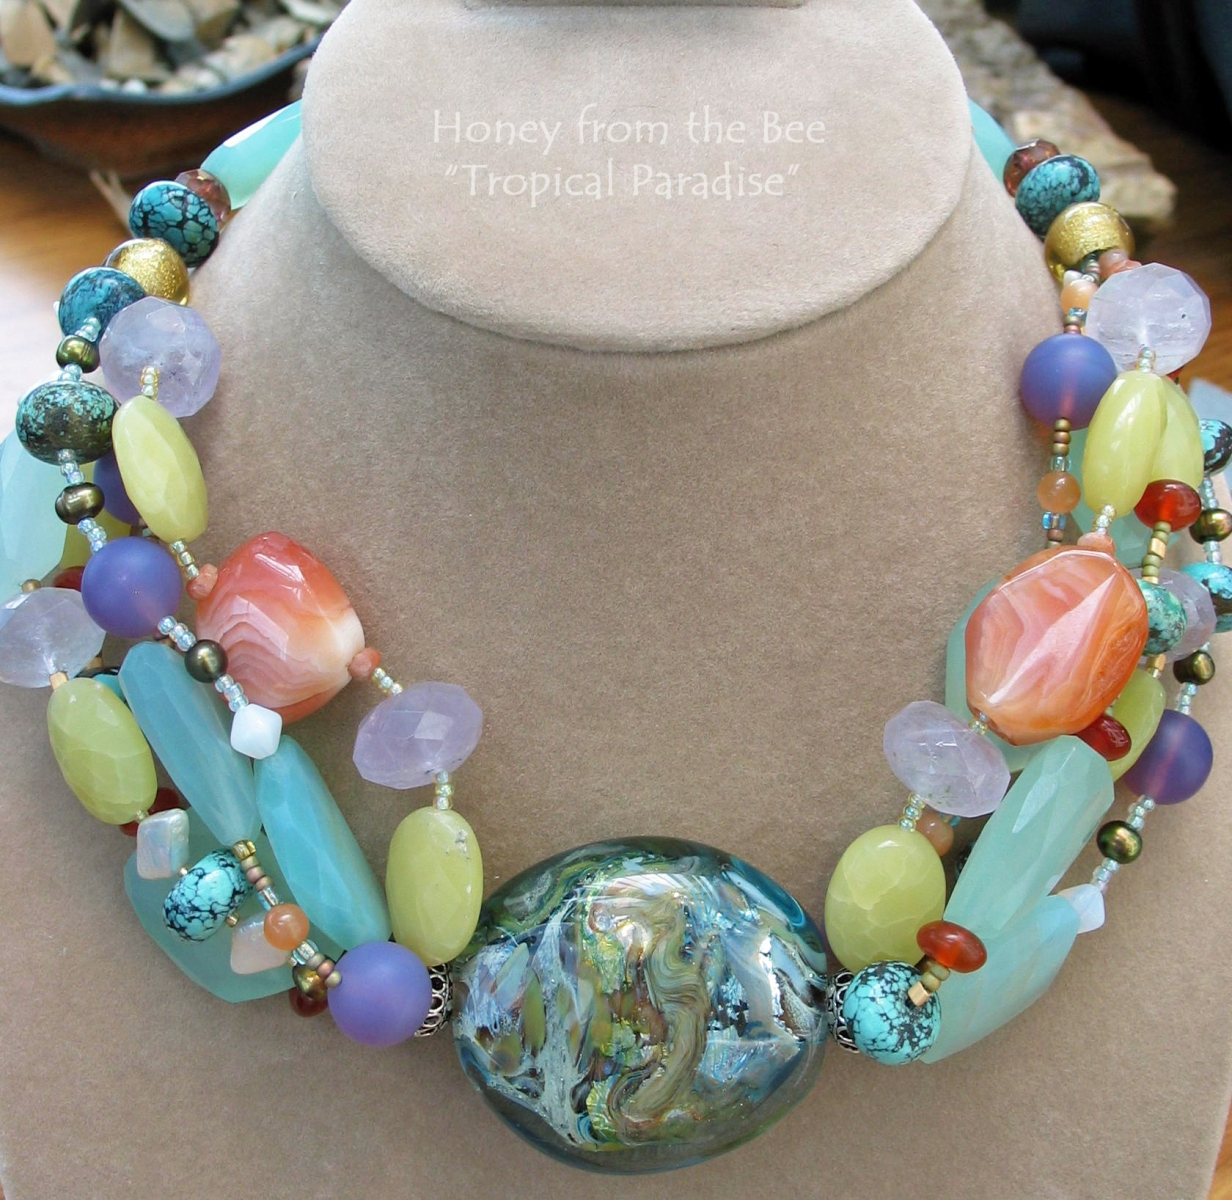 Multiple gemstones in this stunning statement necklace by Honey from the Bee